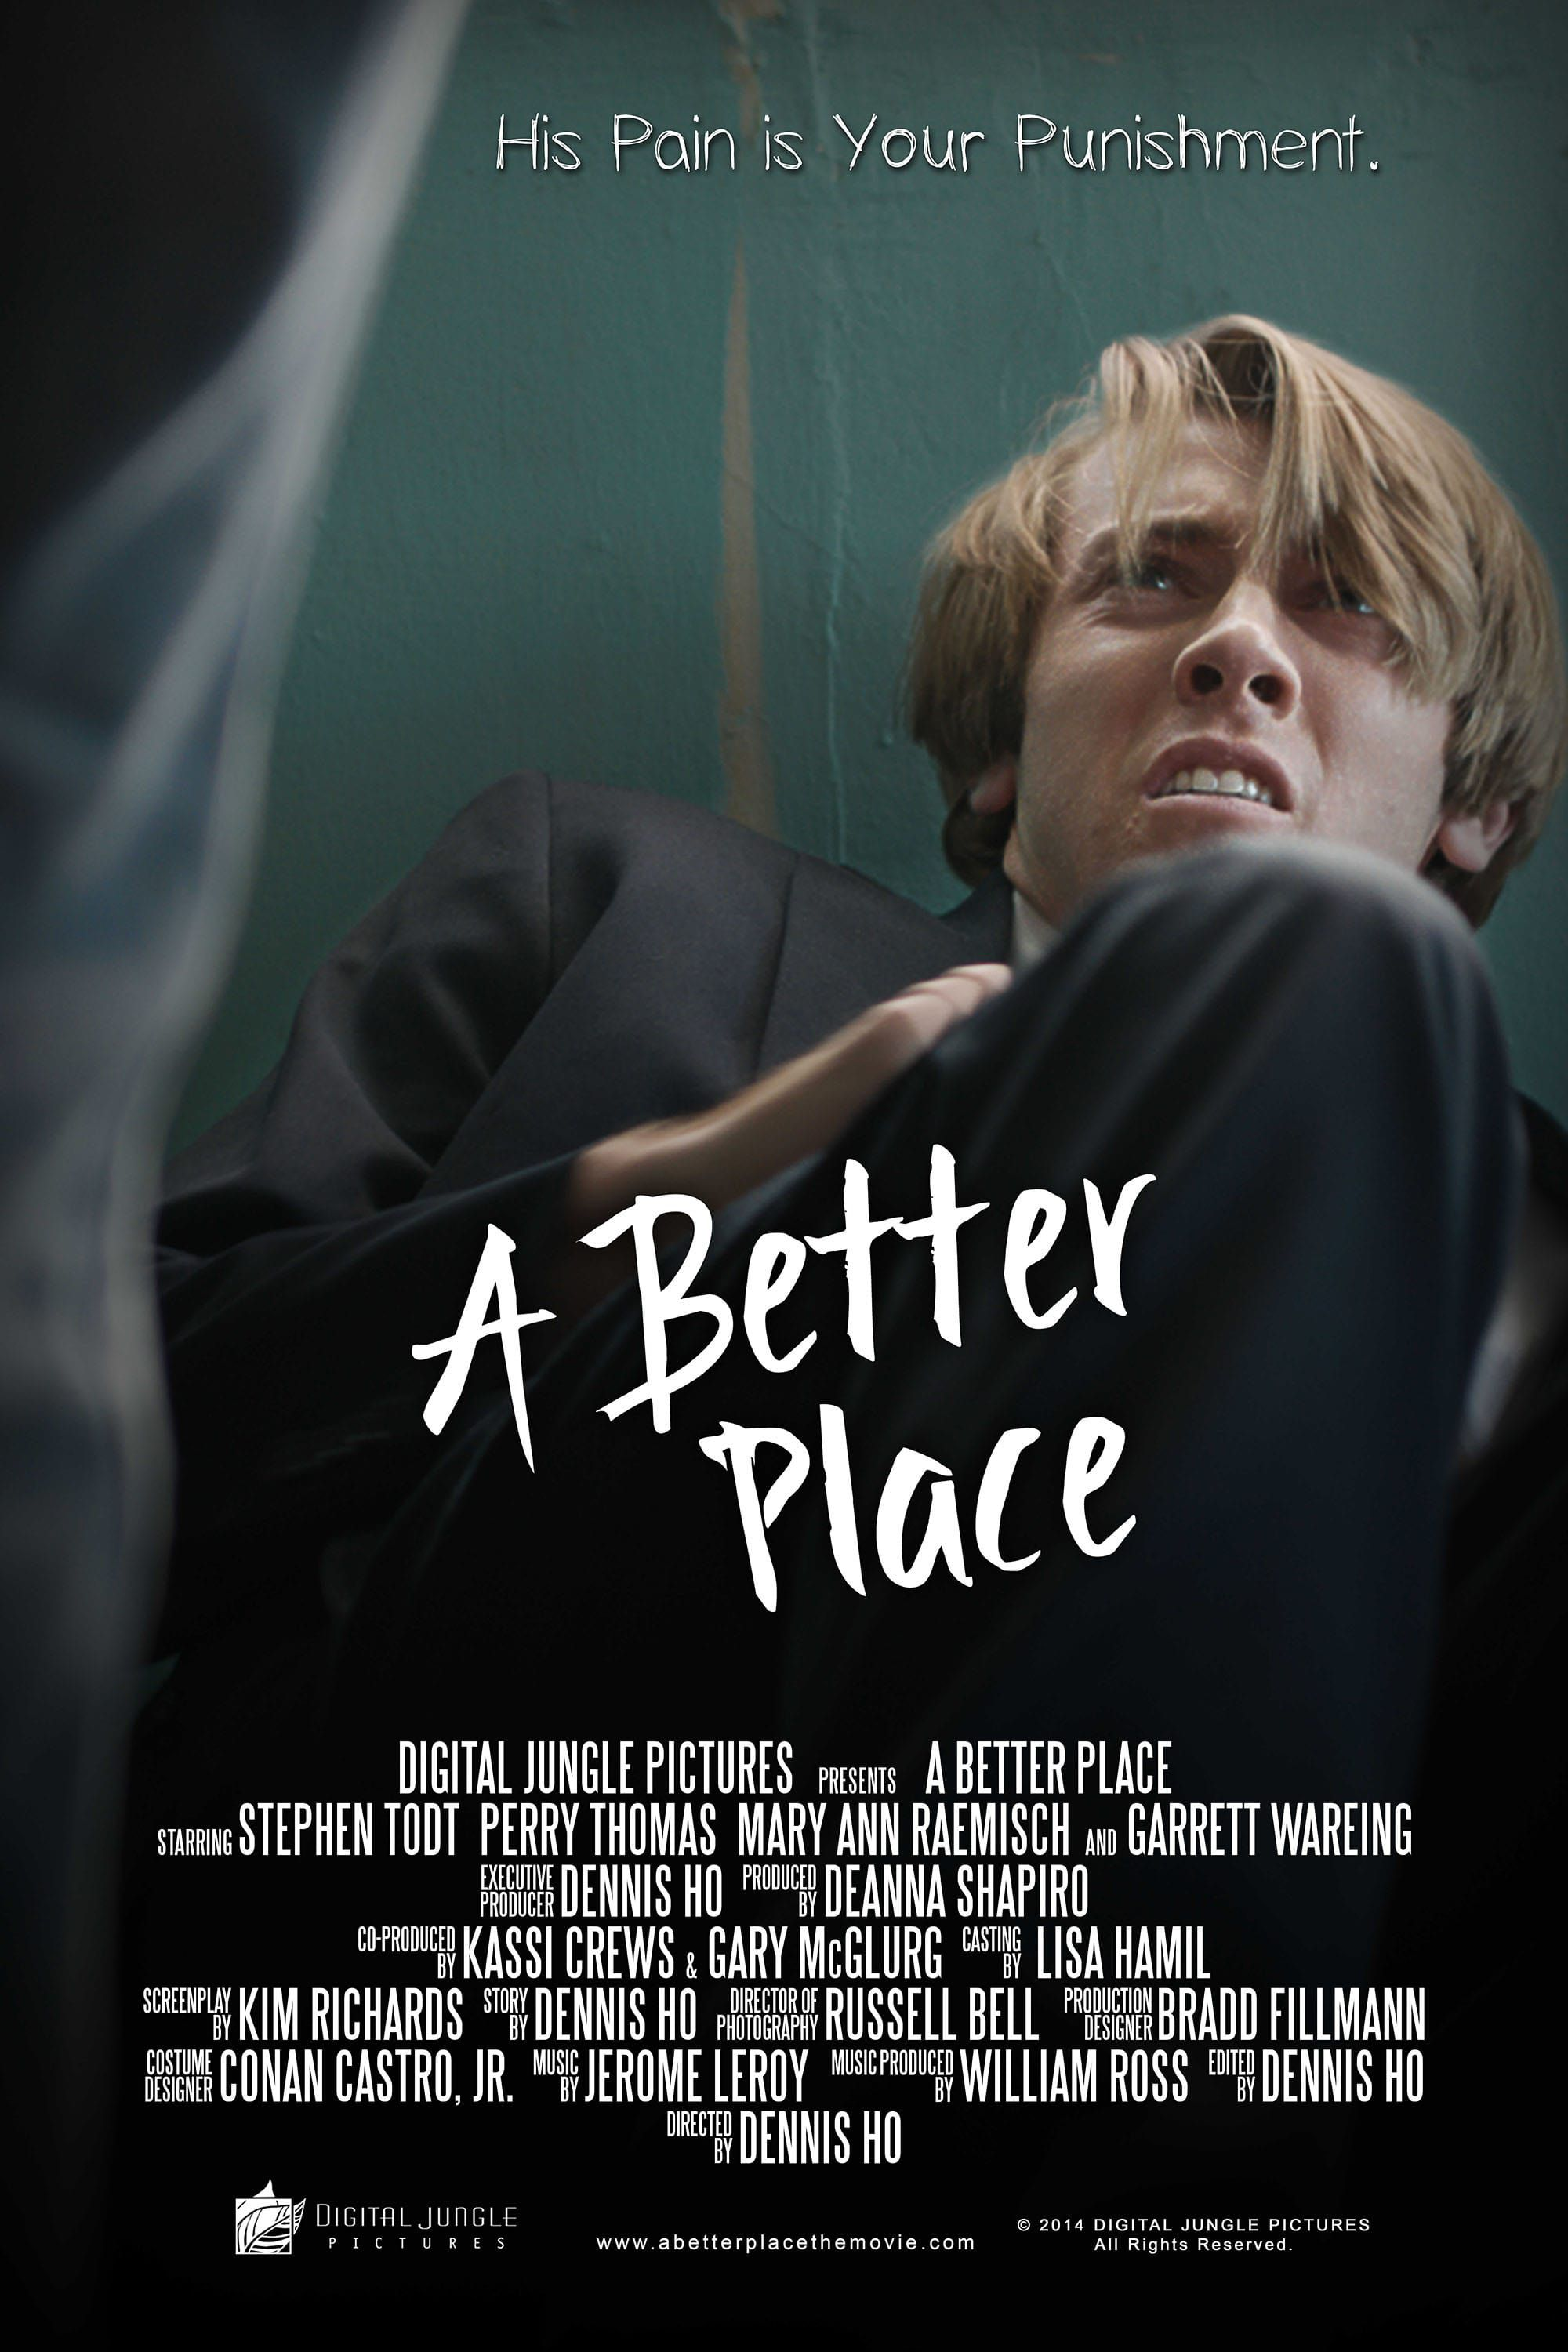 A Better Place - Film (2014)